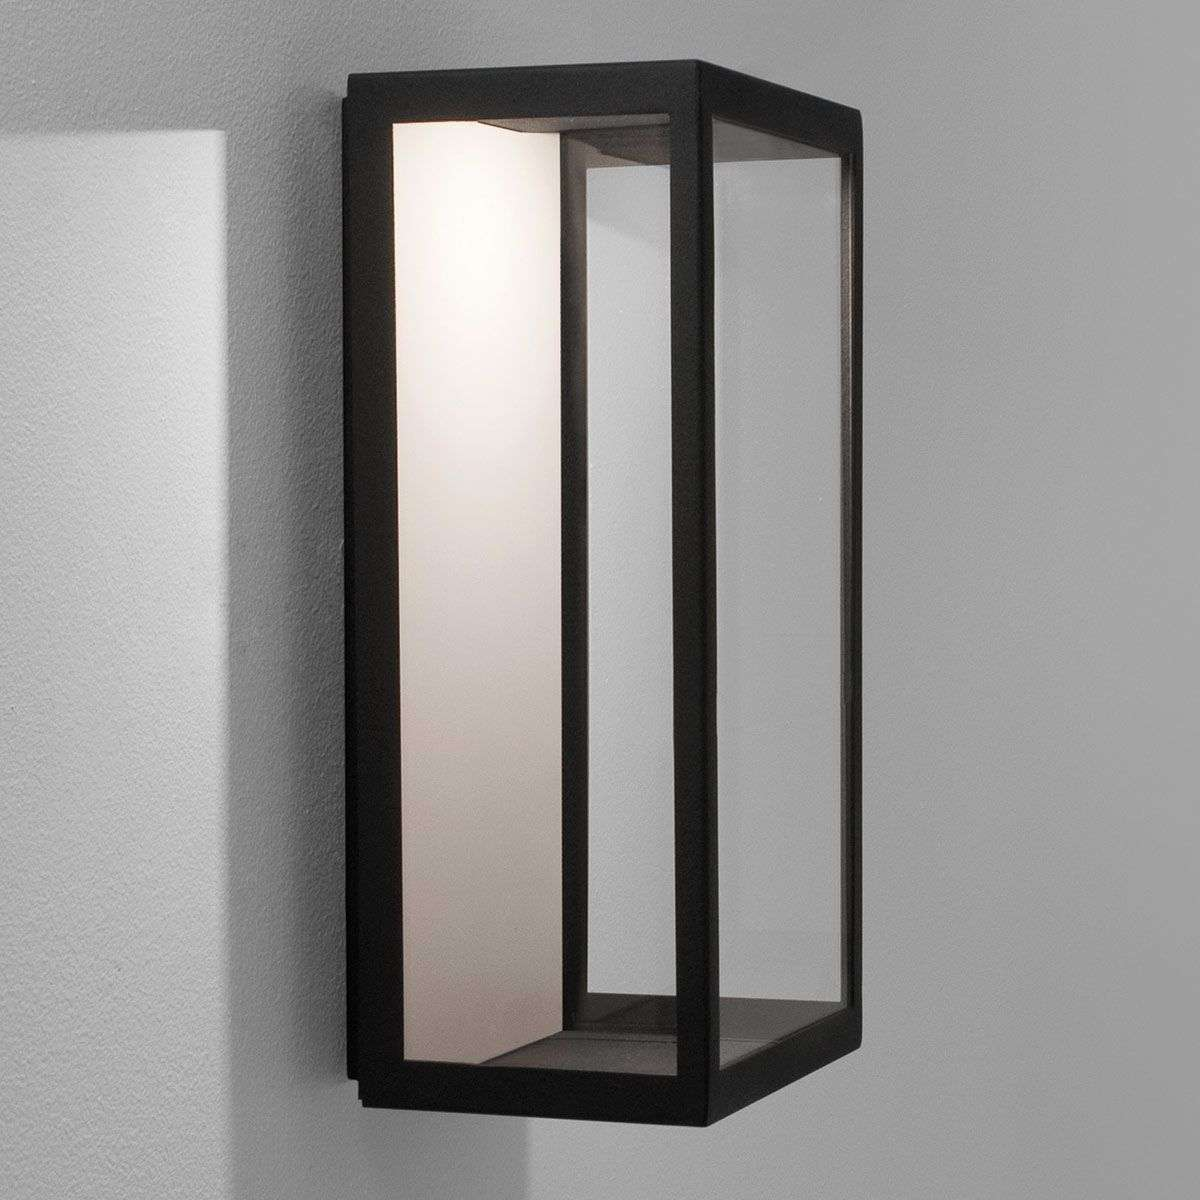 LED outdoor wall light Puzzle in black-1020528-32